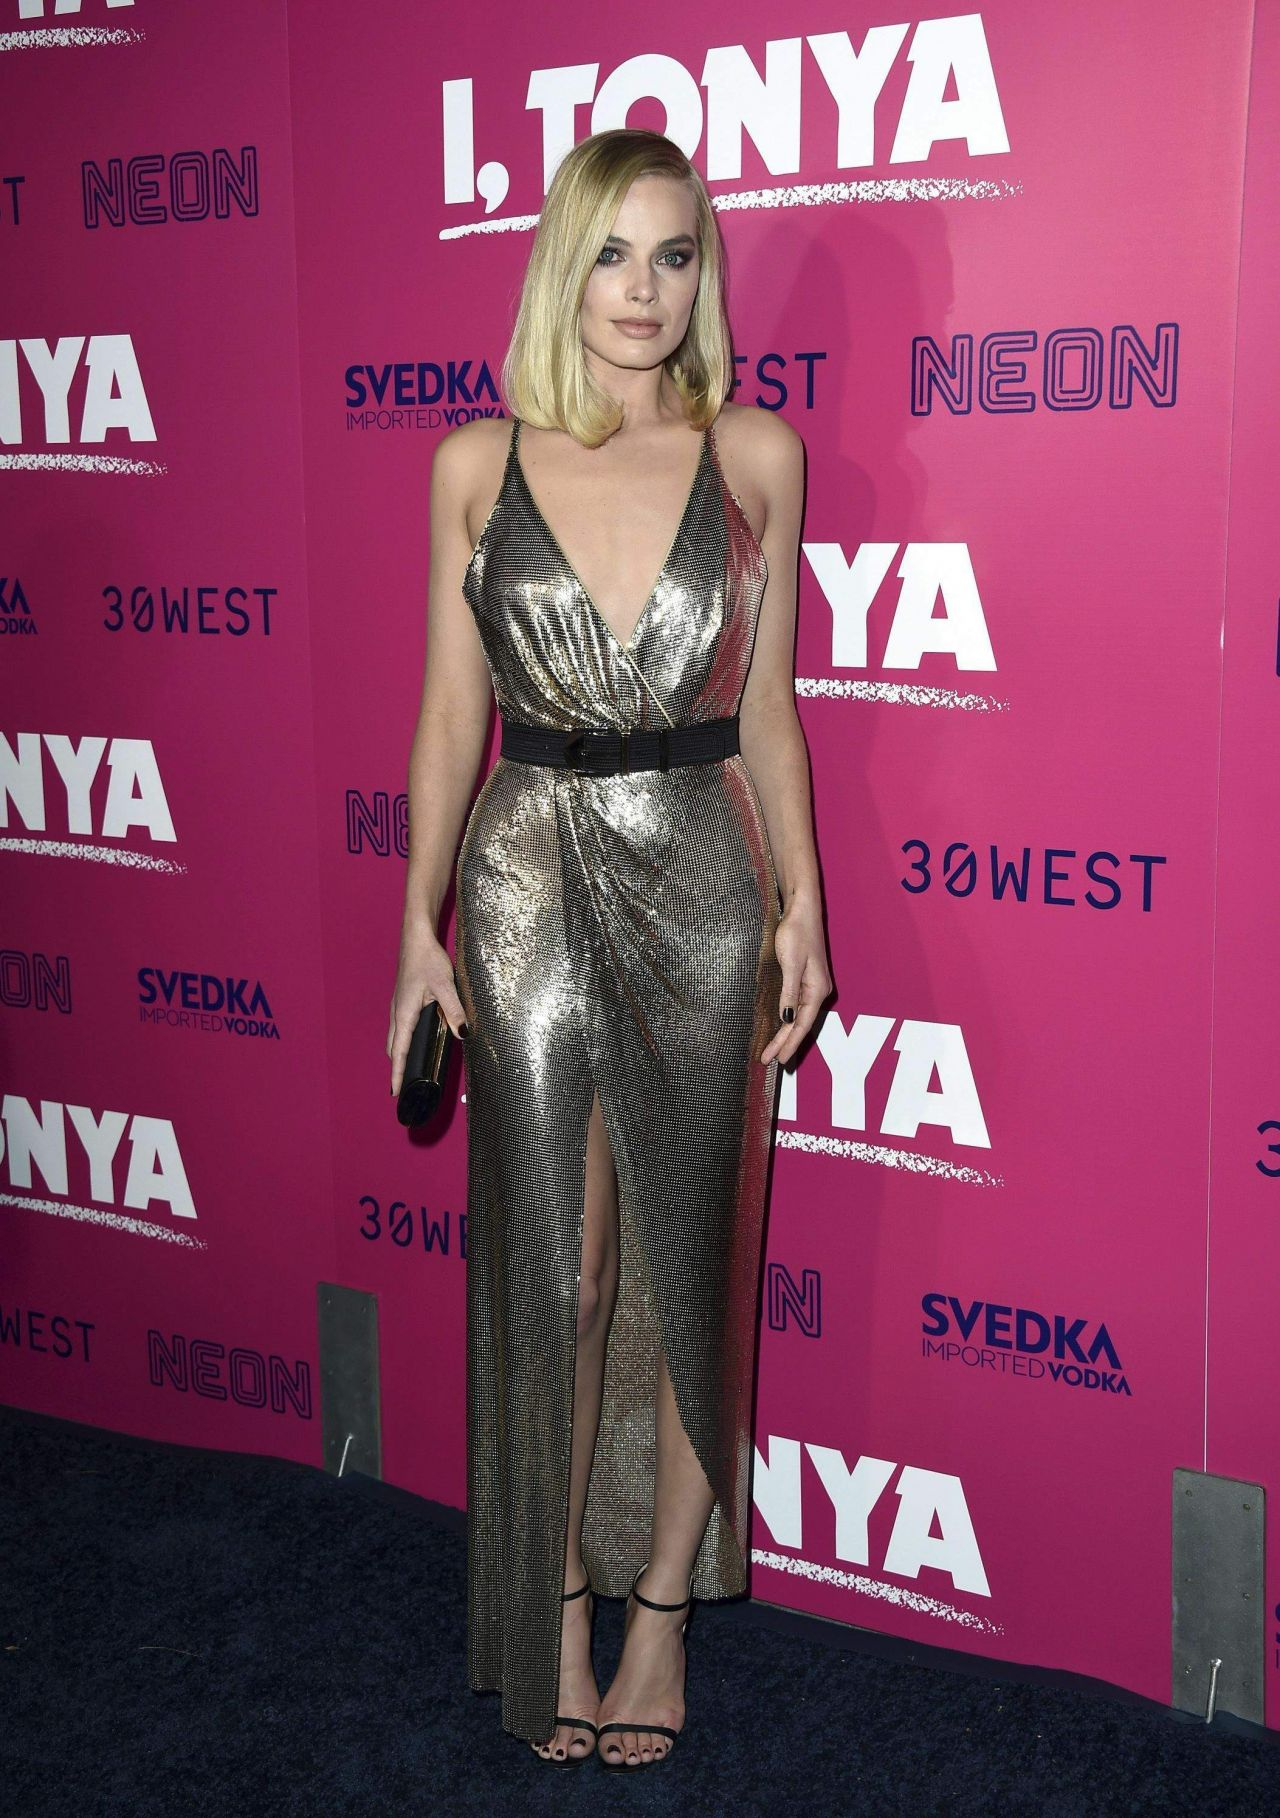 http://celebmafia.com/wp-content/uploads/2017/12/margot-robbie-i-tonya-premiere-in-hollywood-2.jpg